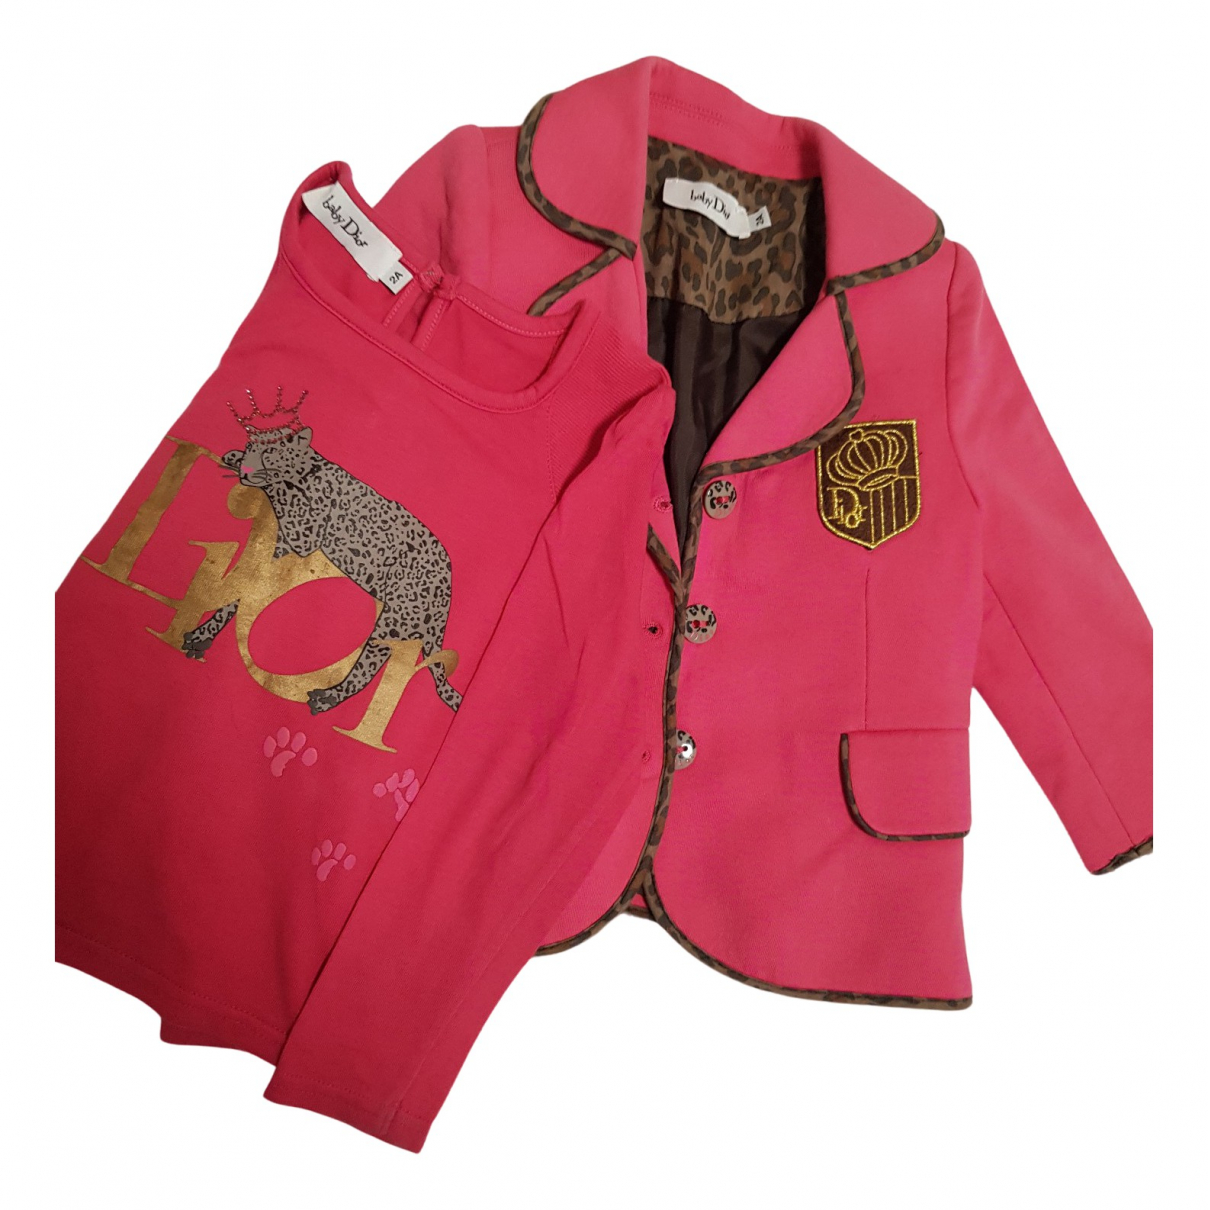 Dior N Pink Cotton Outfits for Kids 2 years - up to 86cm FR